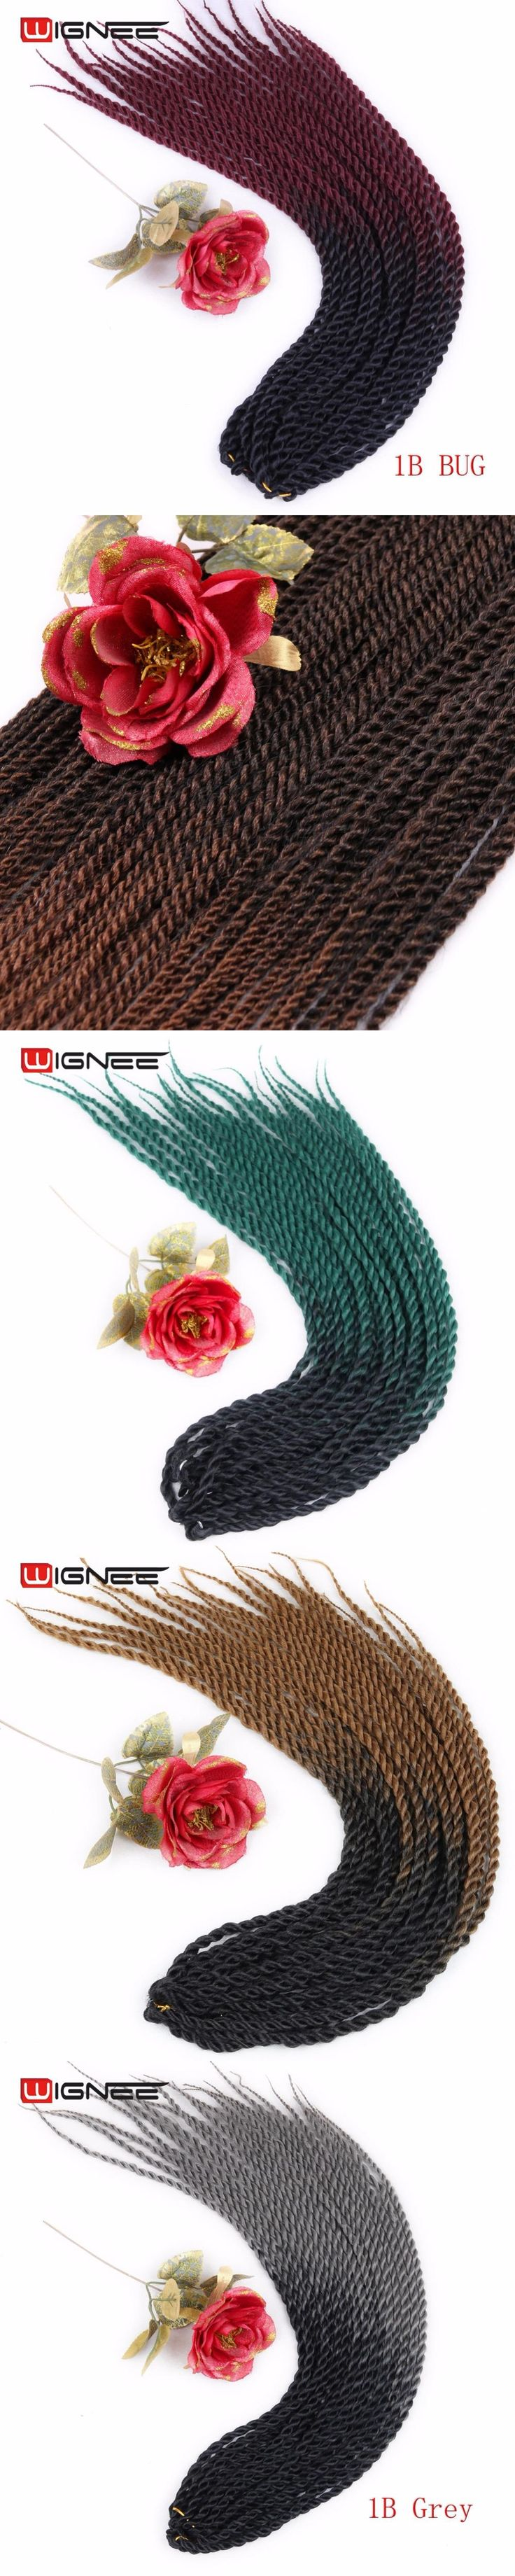 "Wignee 20"" Havana Twist Hair Extension For Black Women High Temperature Synthetic Ombre Color Black Root To Grey/BUG/Brown/Green"